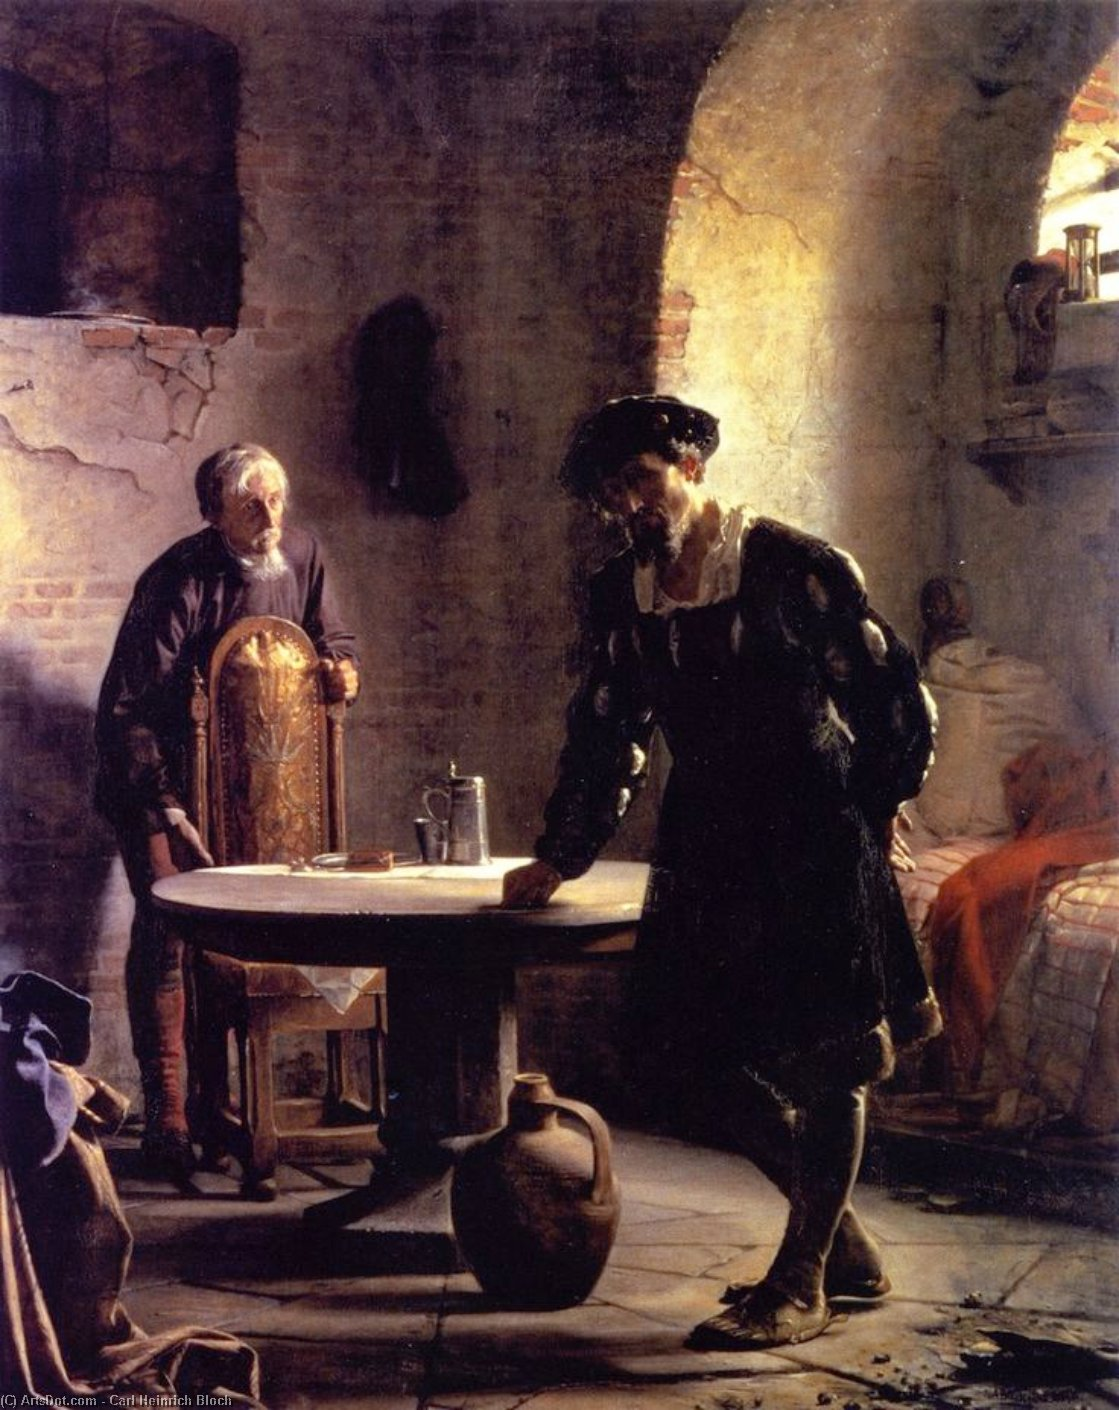 Christian II in Prison at Sonderborg Castle, Oil On Canvas by Carl Heinrich Bloch (1834-1890, Denmark)